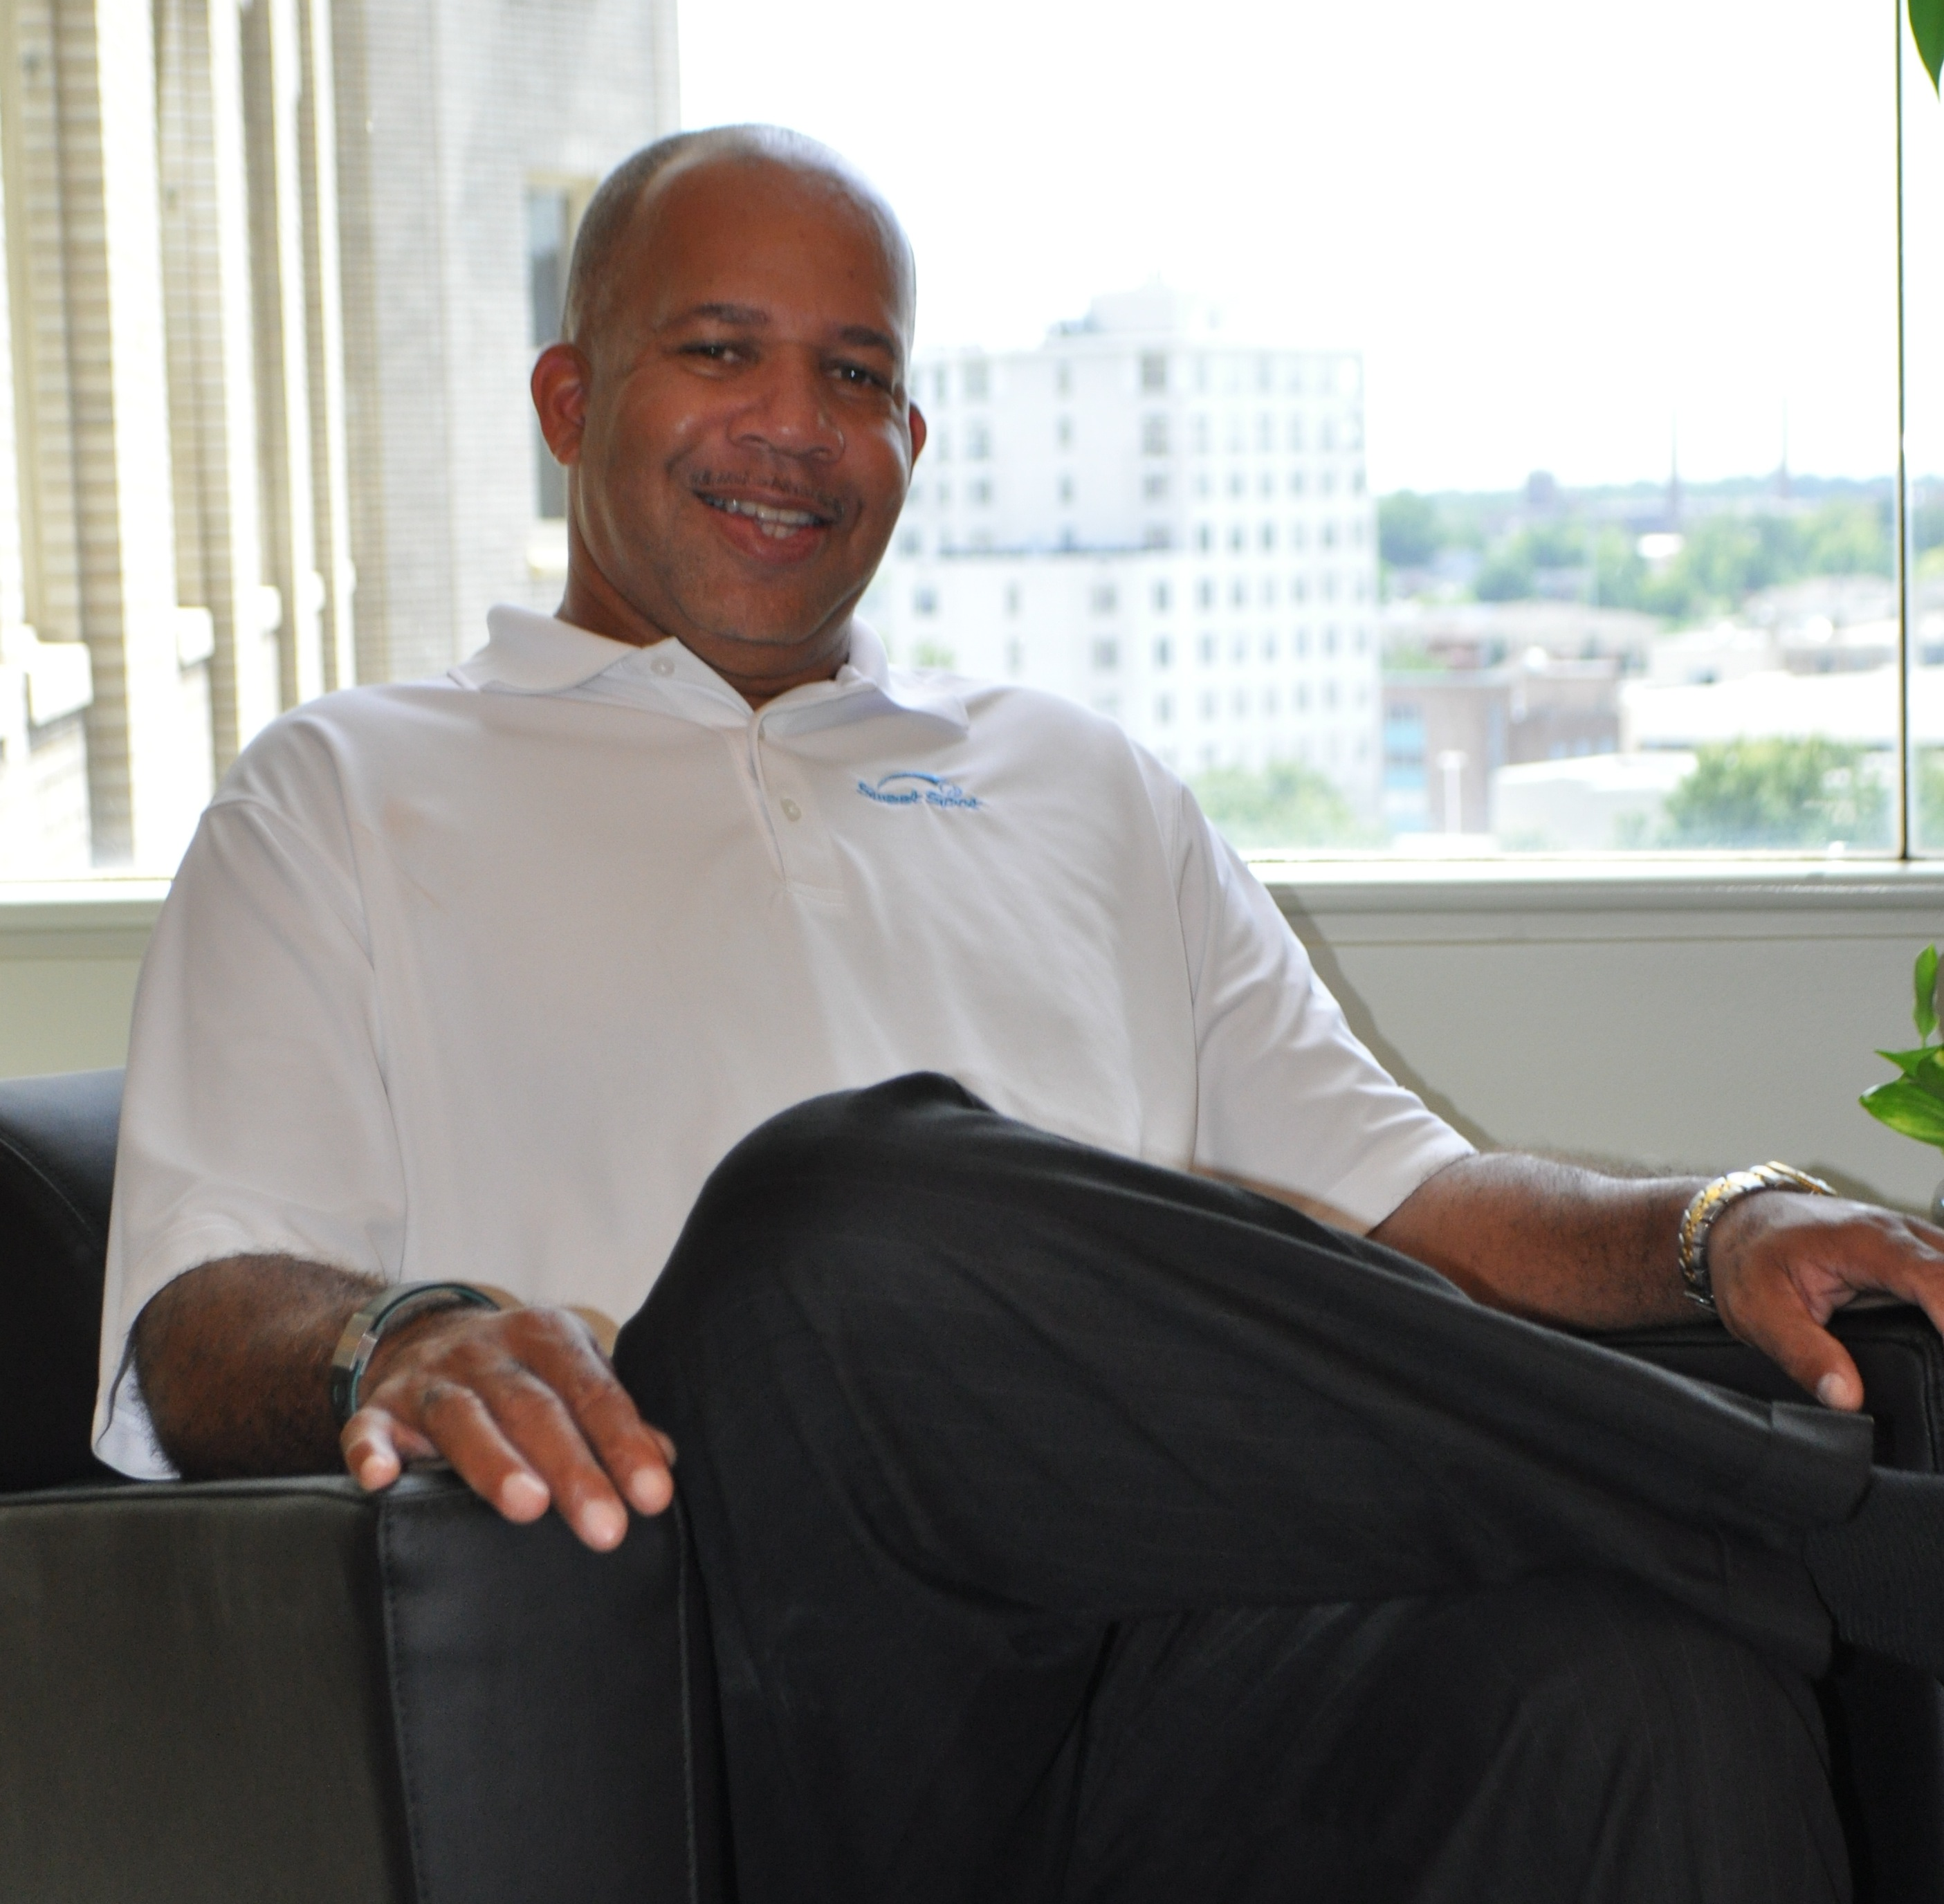 Sweet Spot Apparel Founder and CEO Anthony Shareef (Image: Courtesy of Subject)